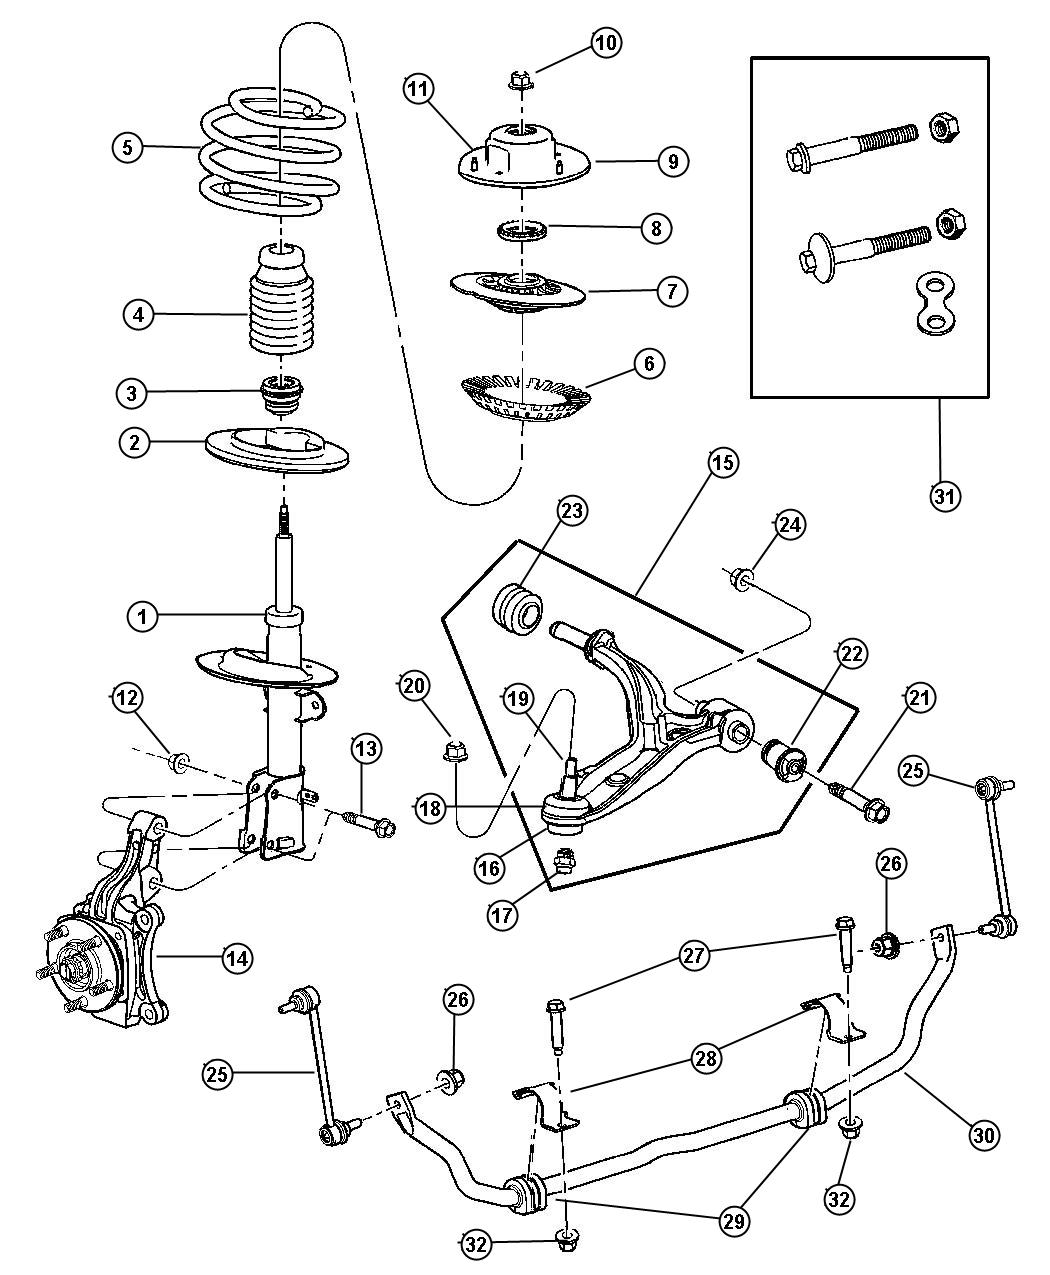 2001 Chrysler Town & Country Suspension, Front.